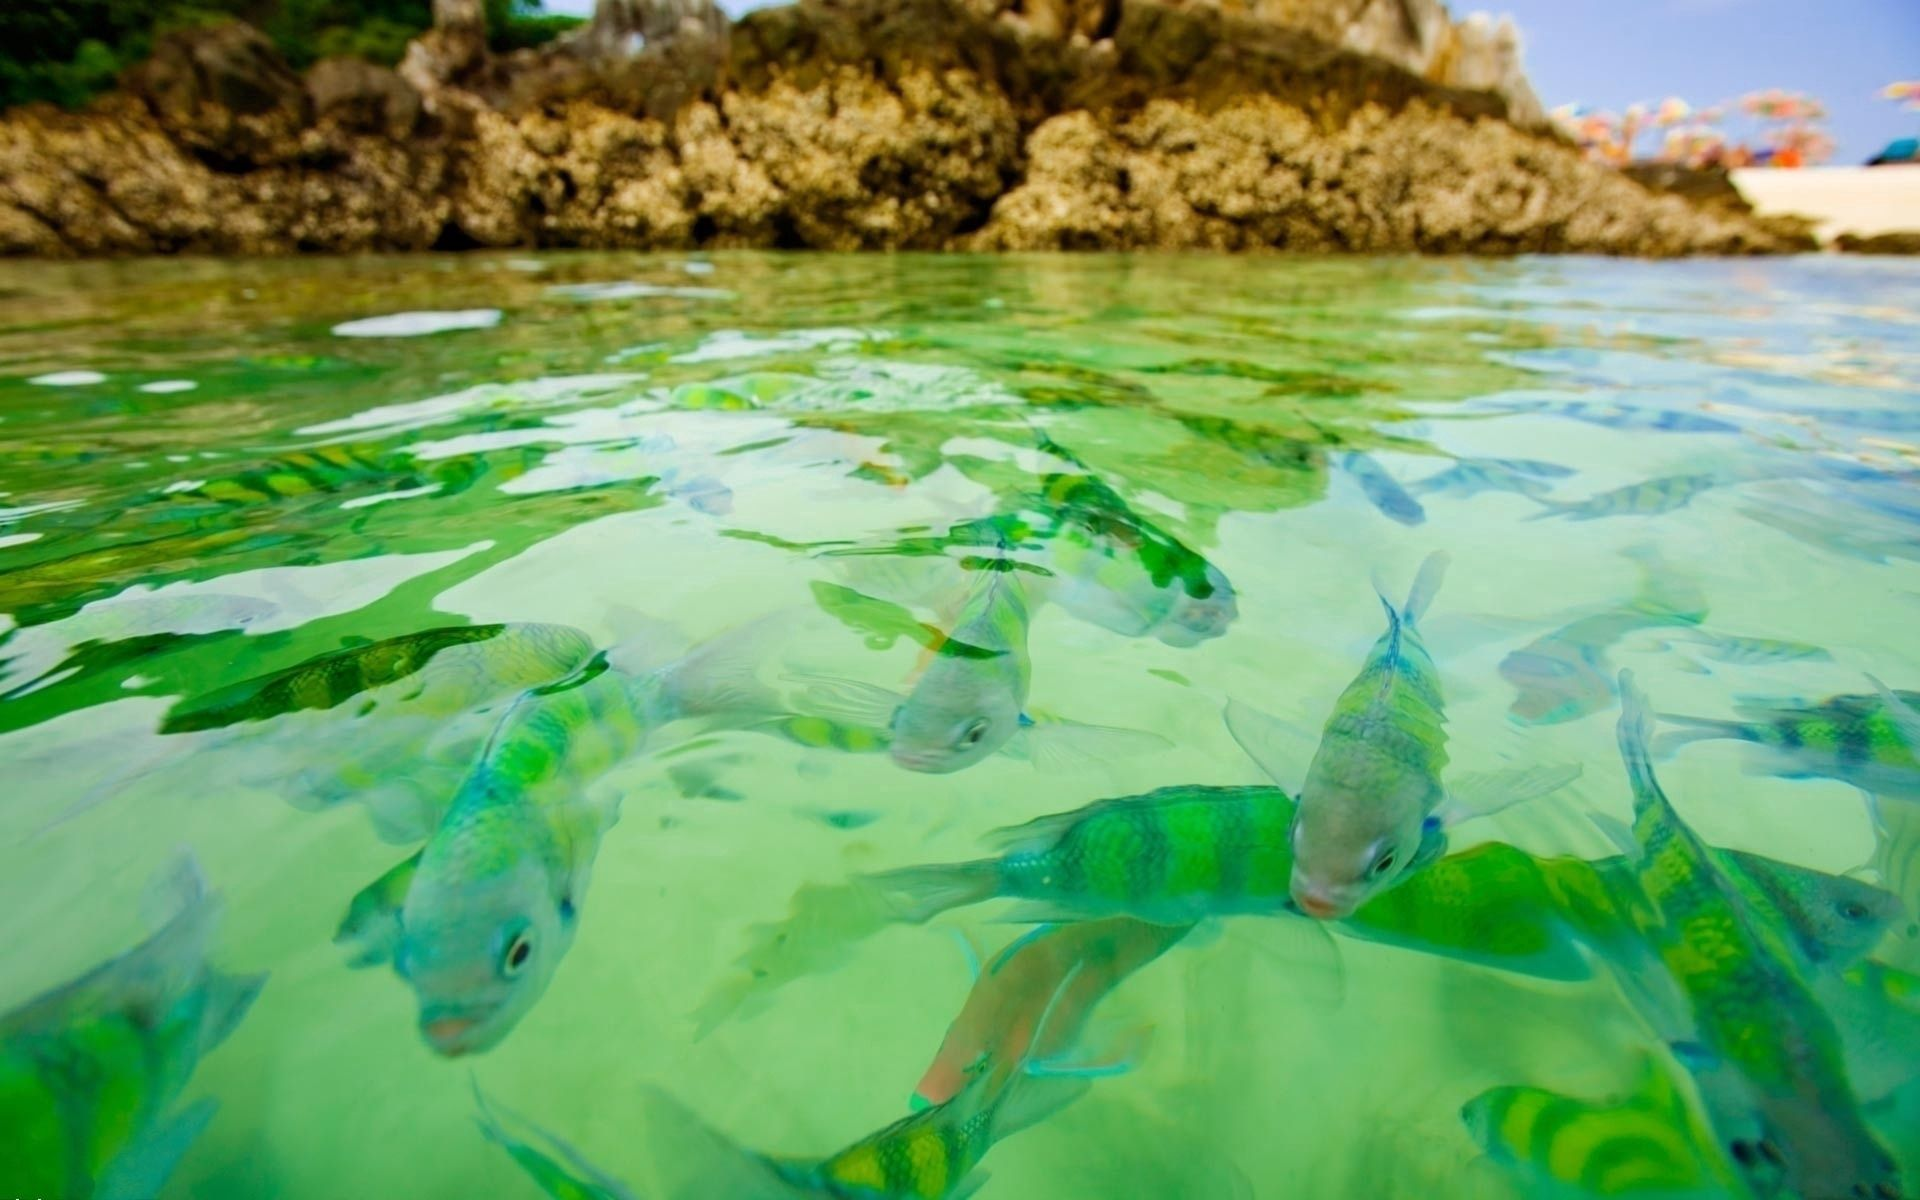 139052 download wallpaper Nature, Fishes, Fish, Water, Transparent, Rocks screensavers and pictures for free